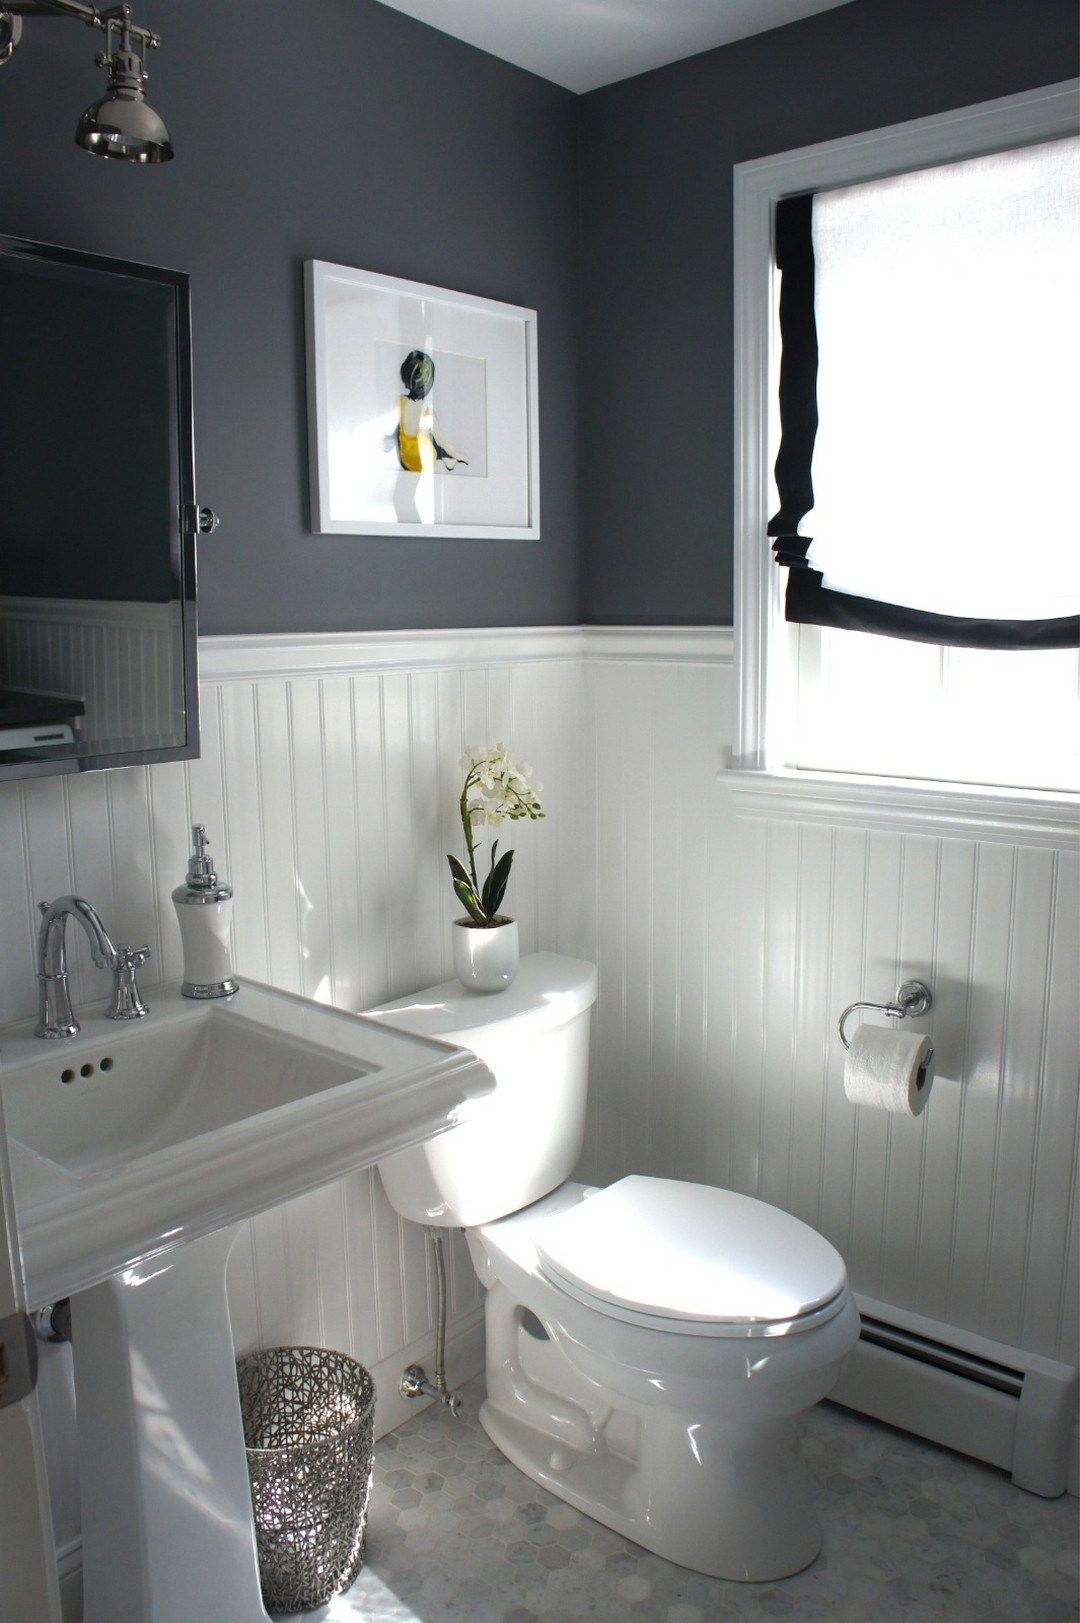 99 small master bathroom makeover ideas on a budget 48 my board pinterest master Small yacht bathroom design